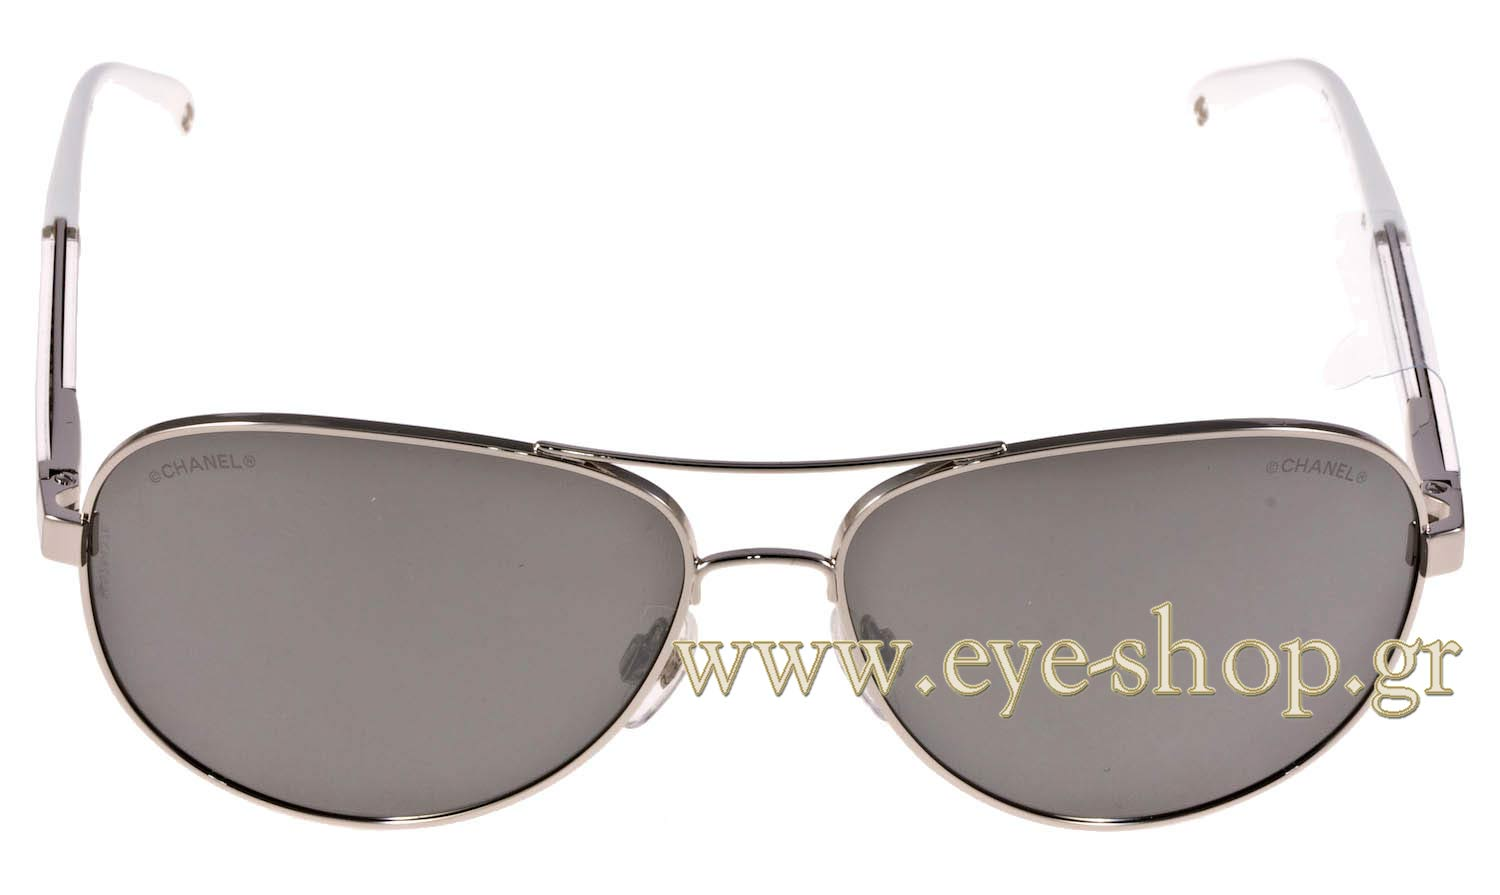 0 chanel 4179 c1244d unisex 2016 eyeshop 2016 ver1 for Chanel collection miroir 4179